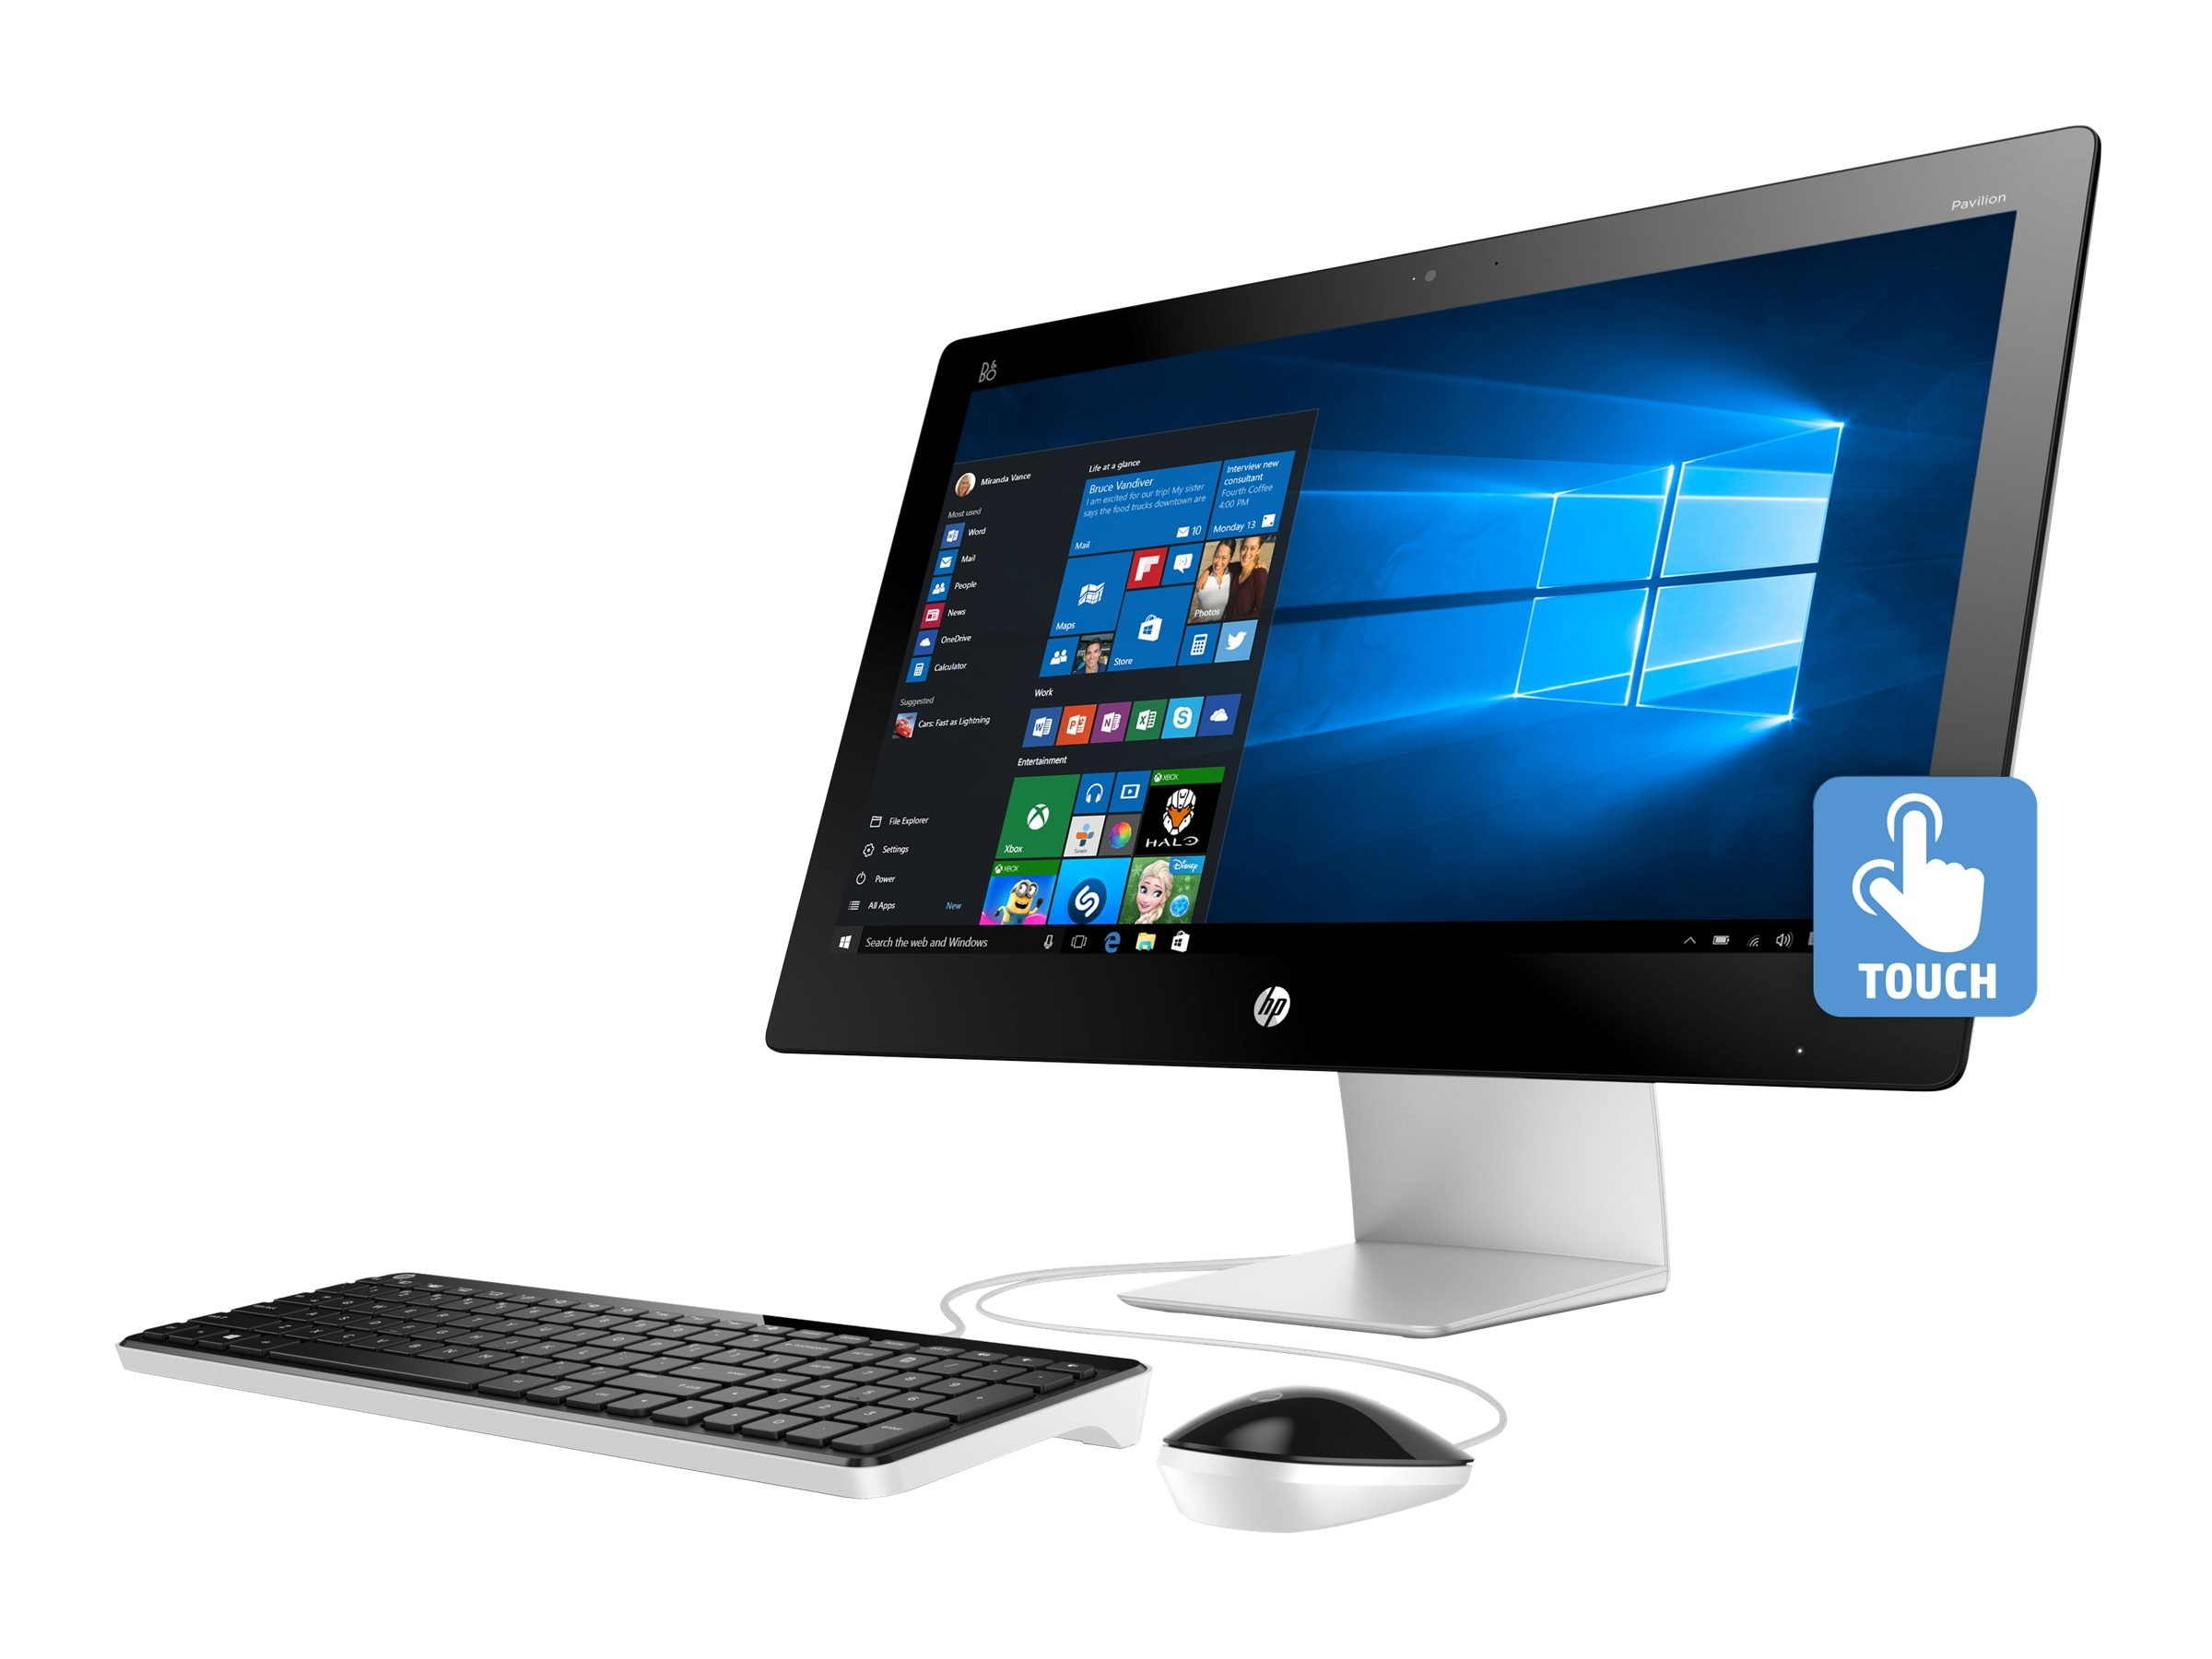 HP Pavilion 23-q110 AIO AMD QC A8-7410 2.2GHz 4GB 1TB Radeon R5 DVD SM GbE ac BT WC 23 FHD MT W10H64, M9Z59AA#ABA, 30616551, Desktops - All-in-One